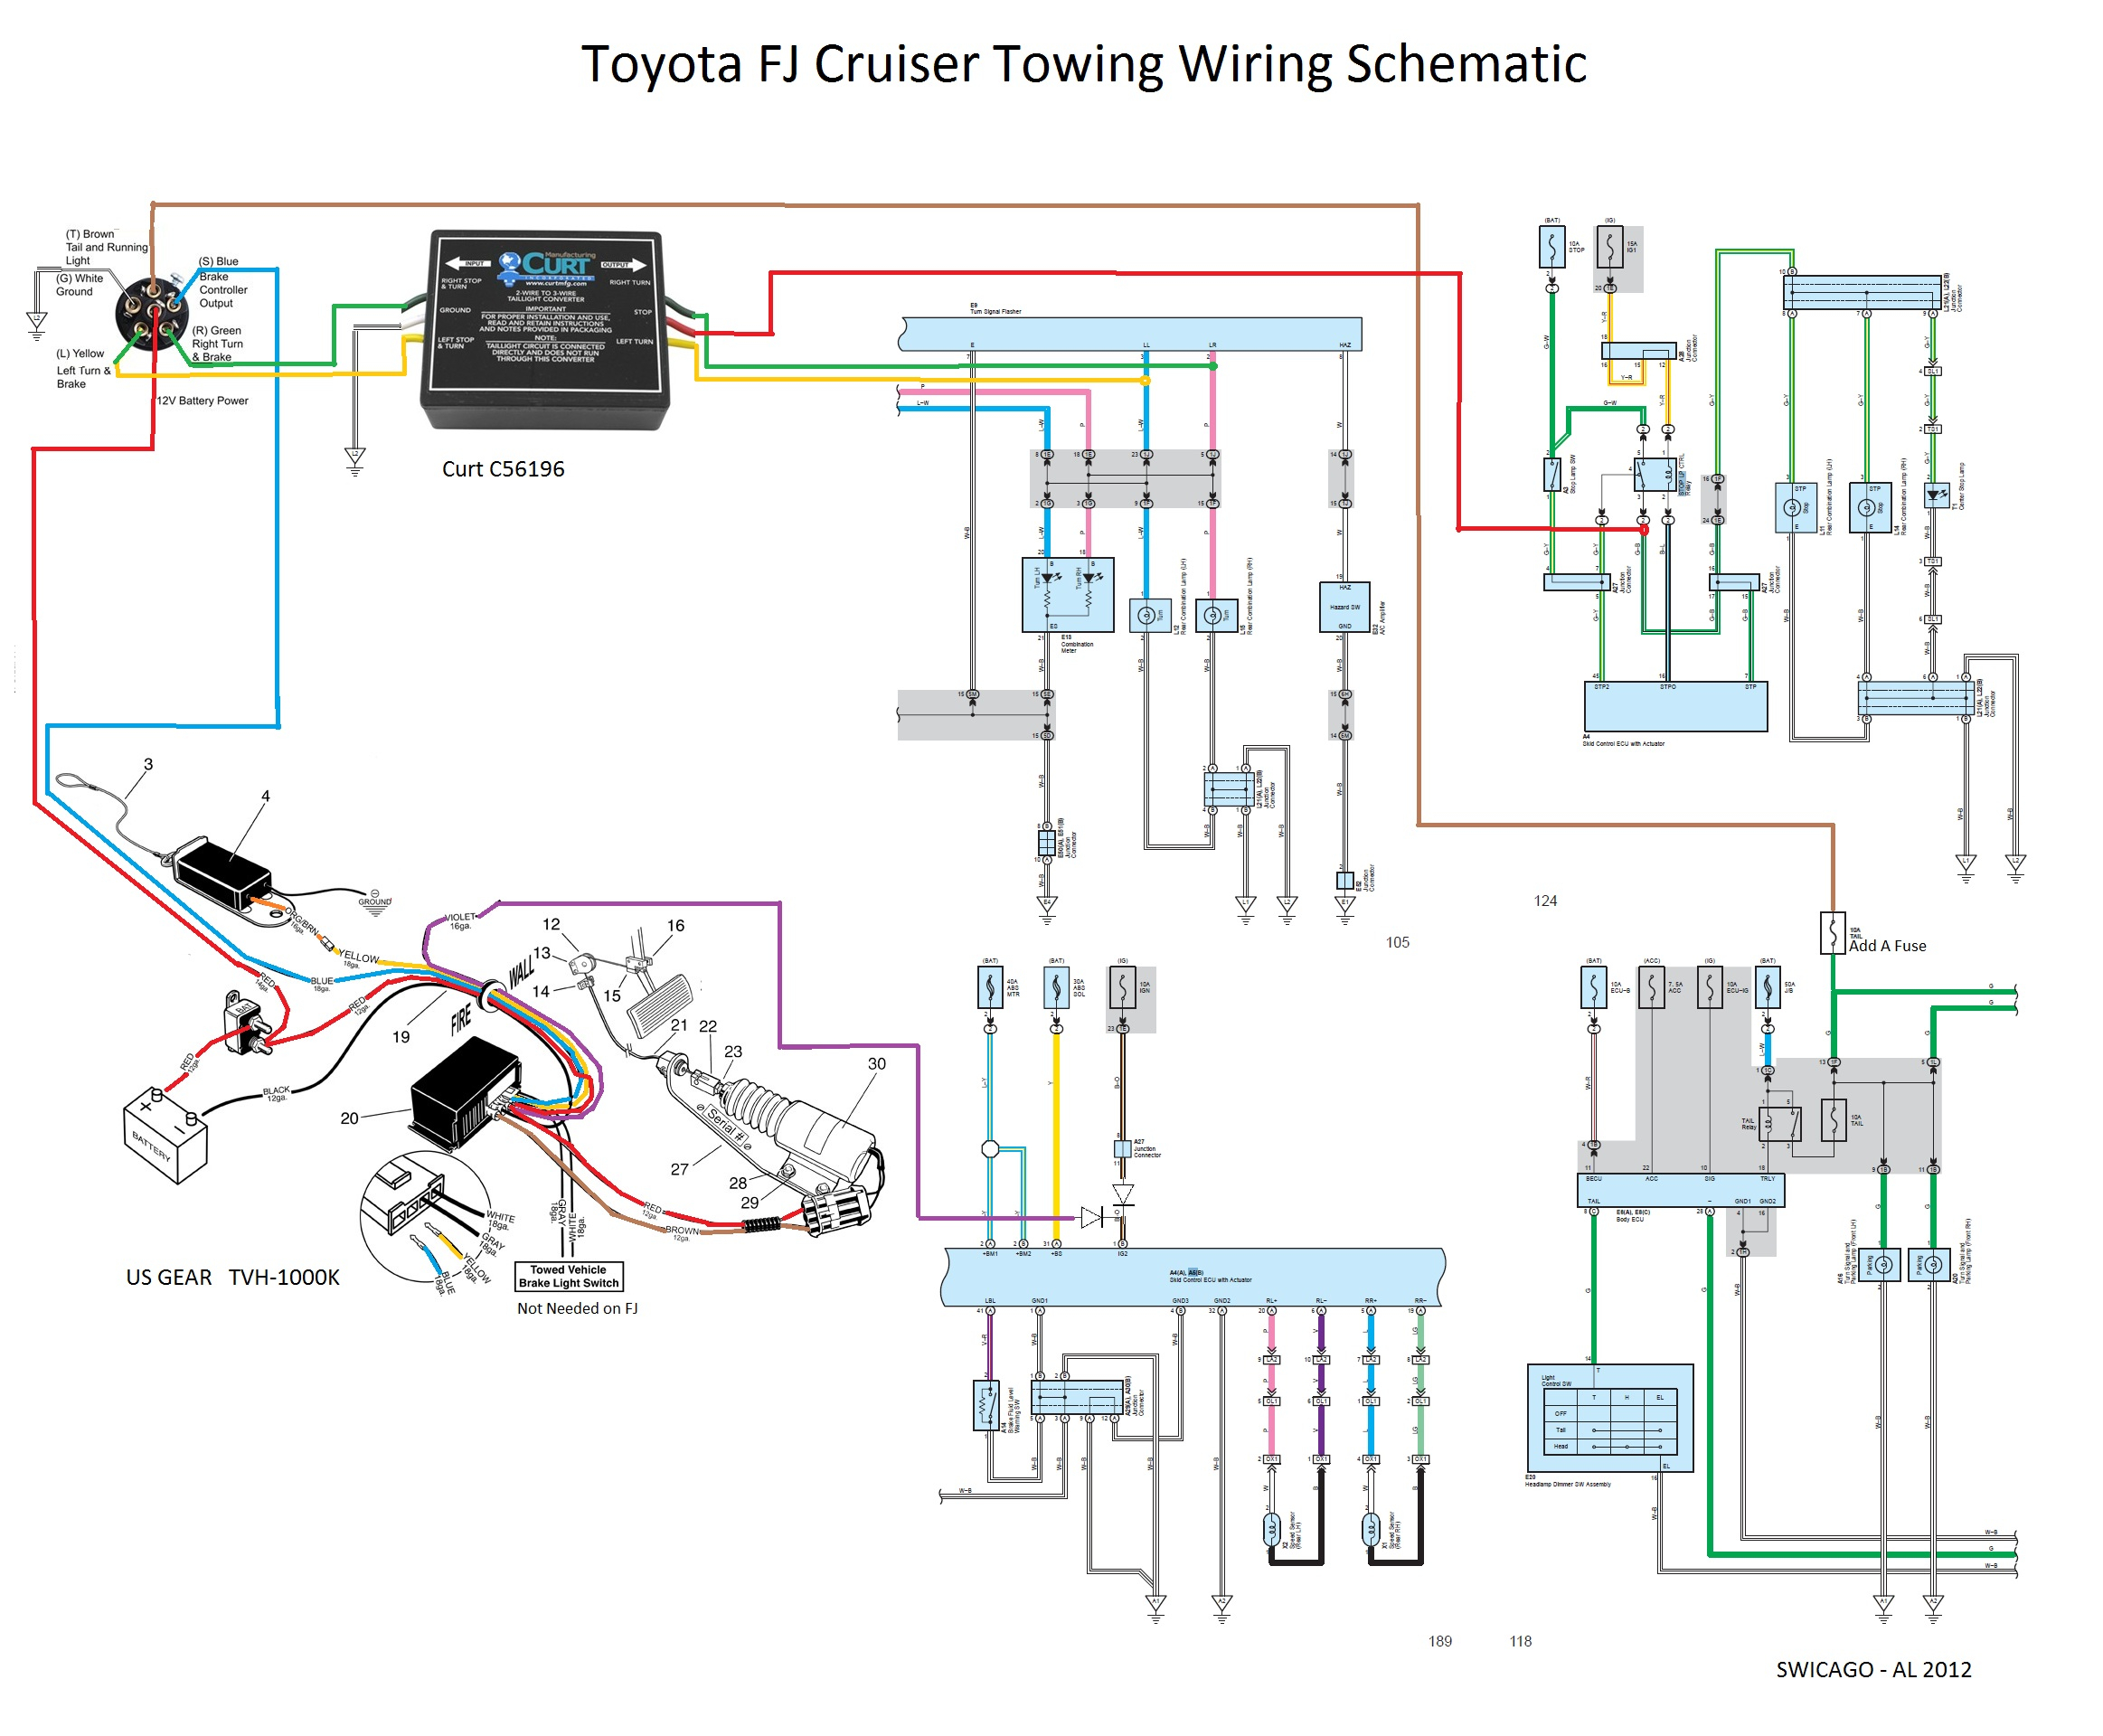 toyota tundra trailer wiring harness diagram Download-Toyota Tundra Trailer Wiring Harness Diagram Beautiful Flat tow 6mt Yes It Can Be Done toyota 13-b